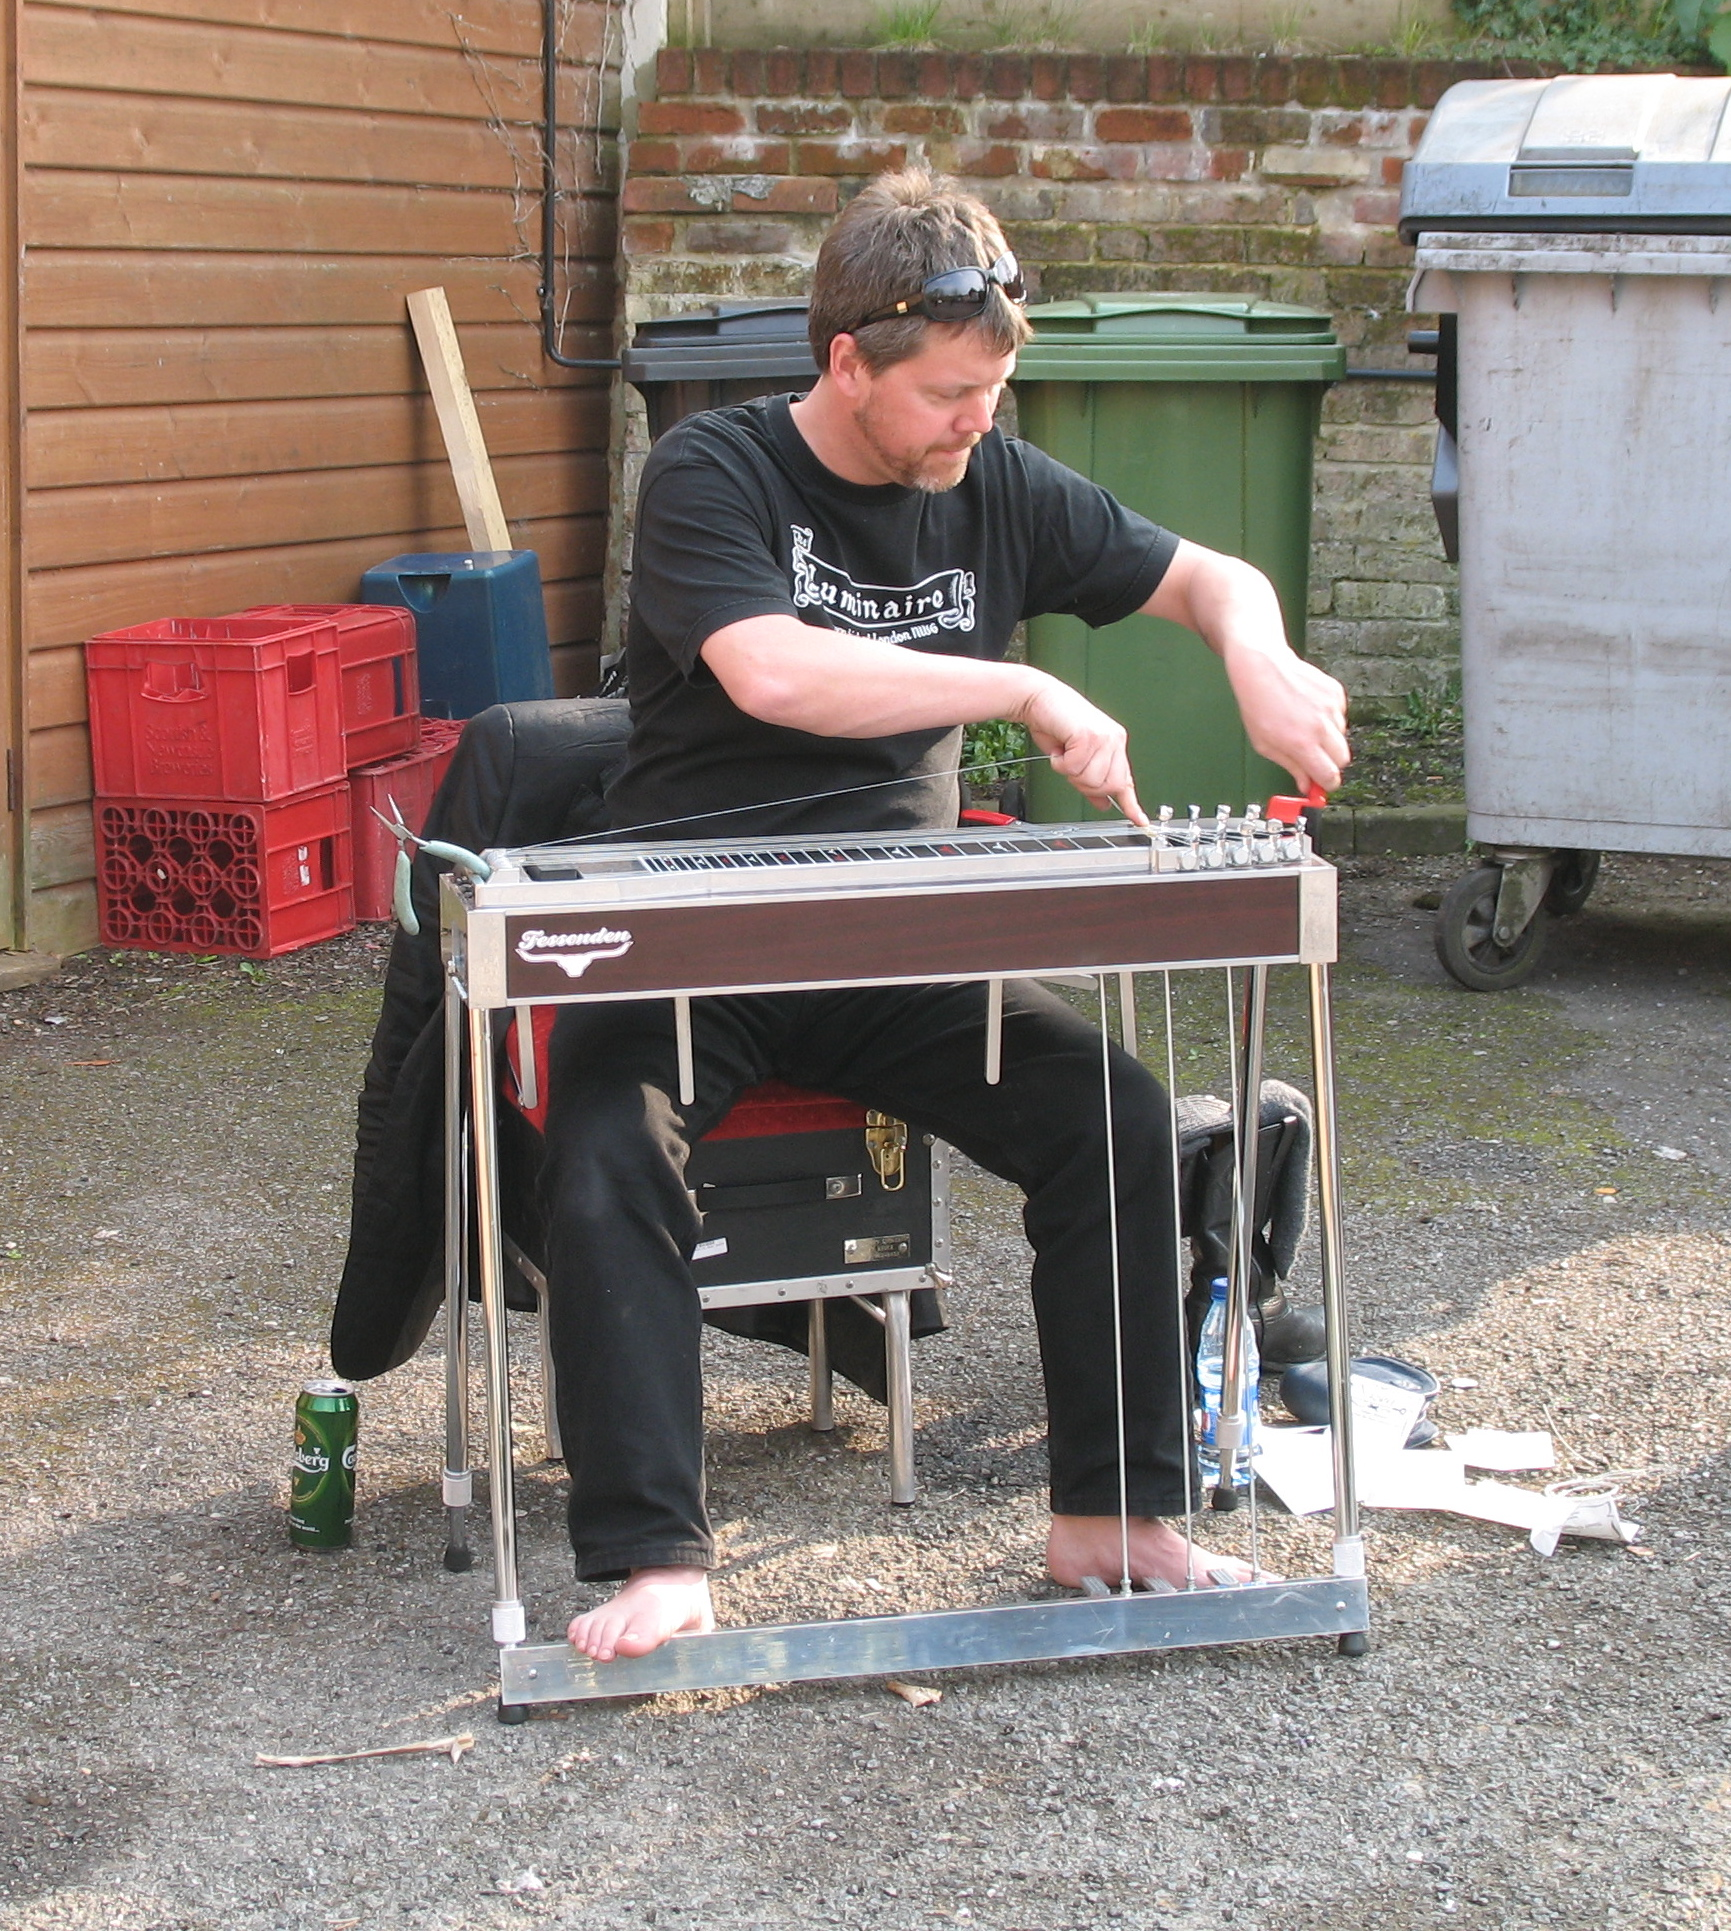 Life can be tough for a pedal steel player